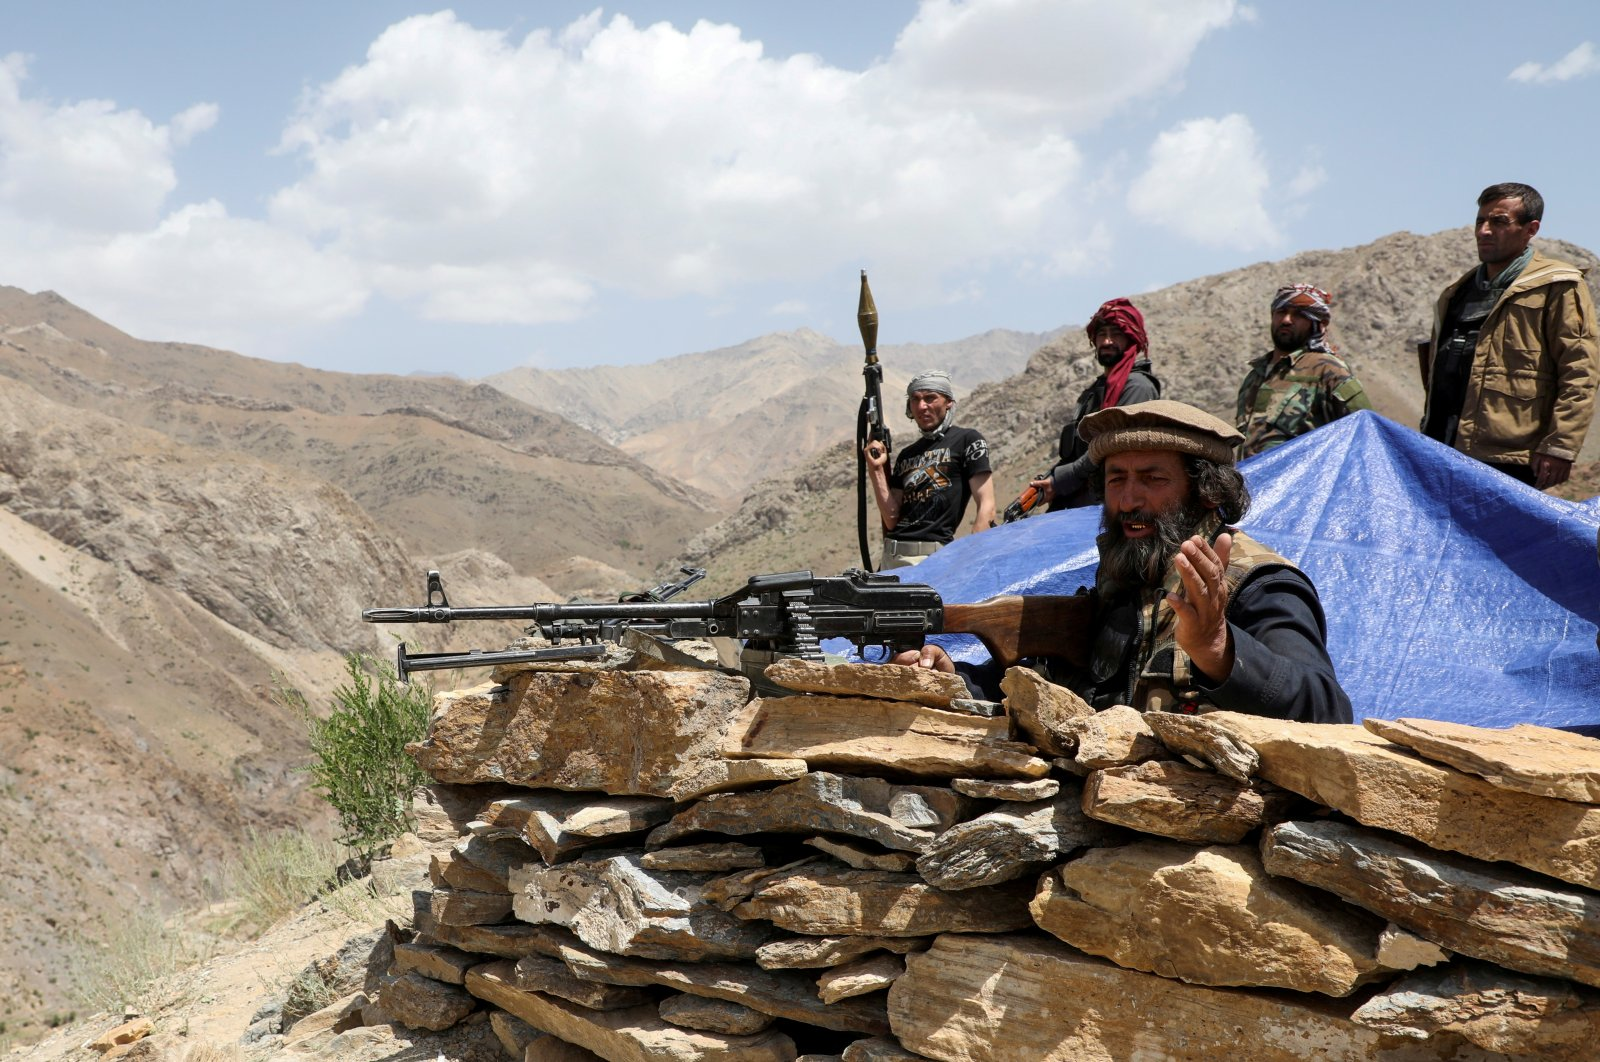 Armed men who are against the Taliban uprising stand at their check post, at the Ghorband District, Parwan Province, Afghanistan, June 29, 2021. (Reuters Photo)